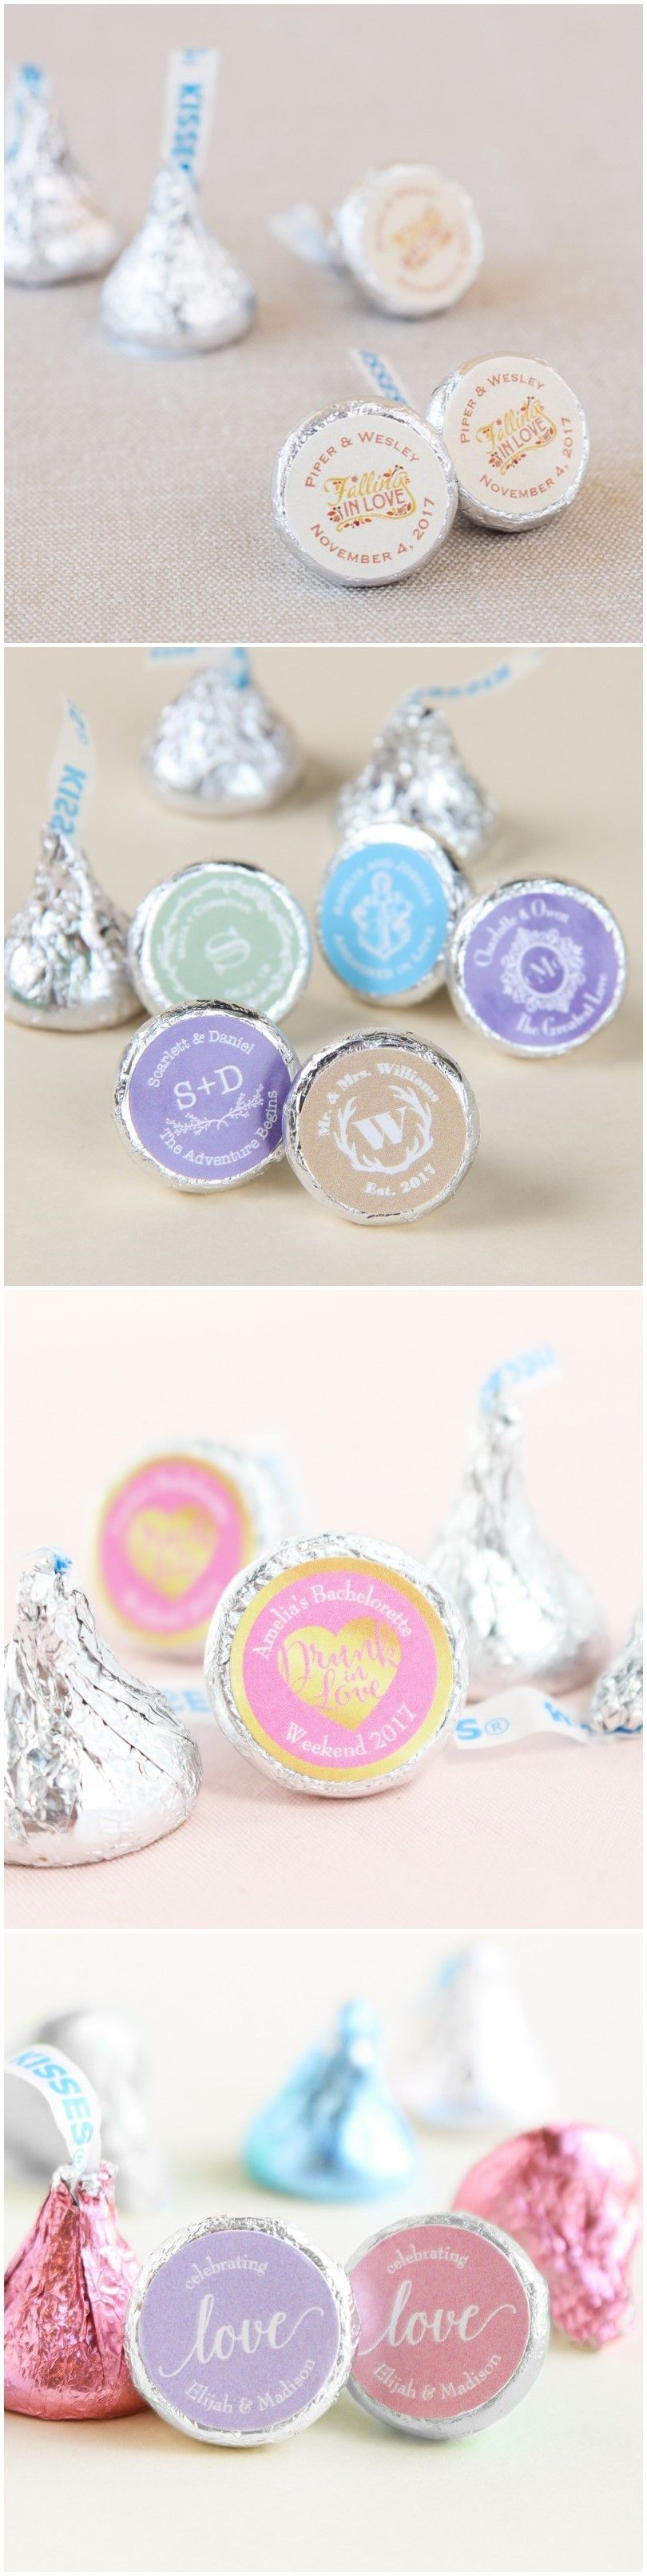 20 Unique and Cheap Wedding Favor Ideas Under $2 | Favors, Cheap ...